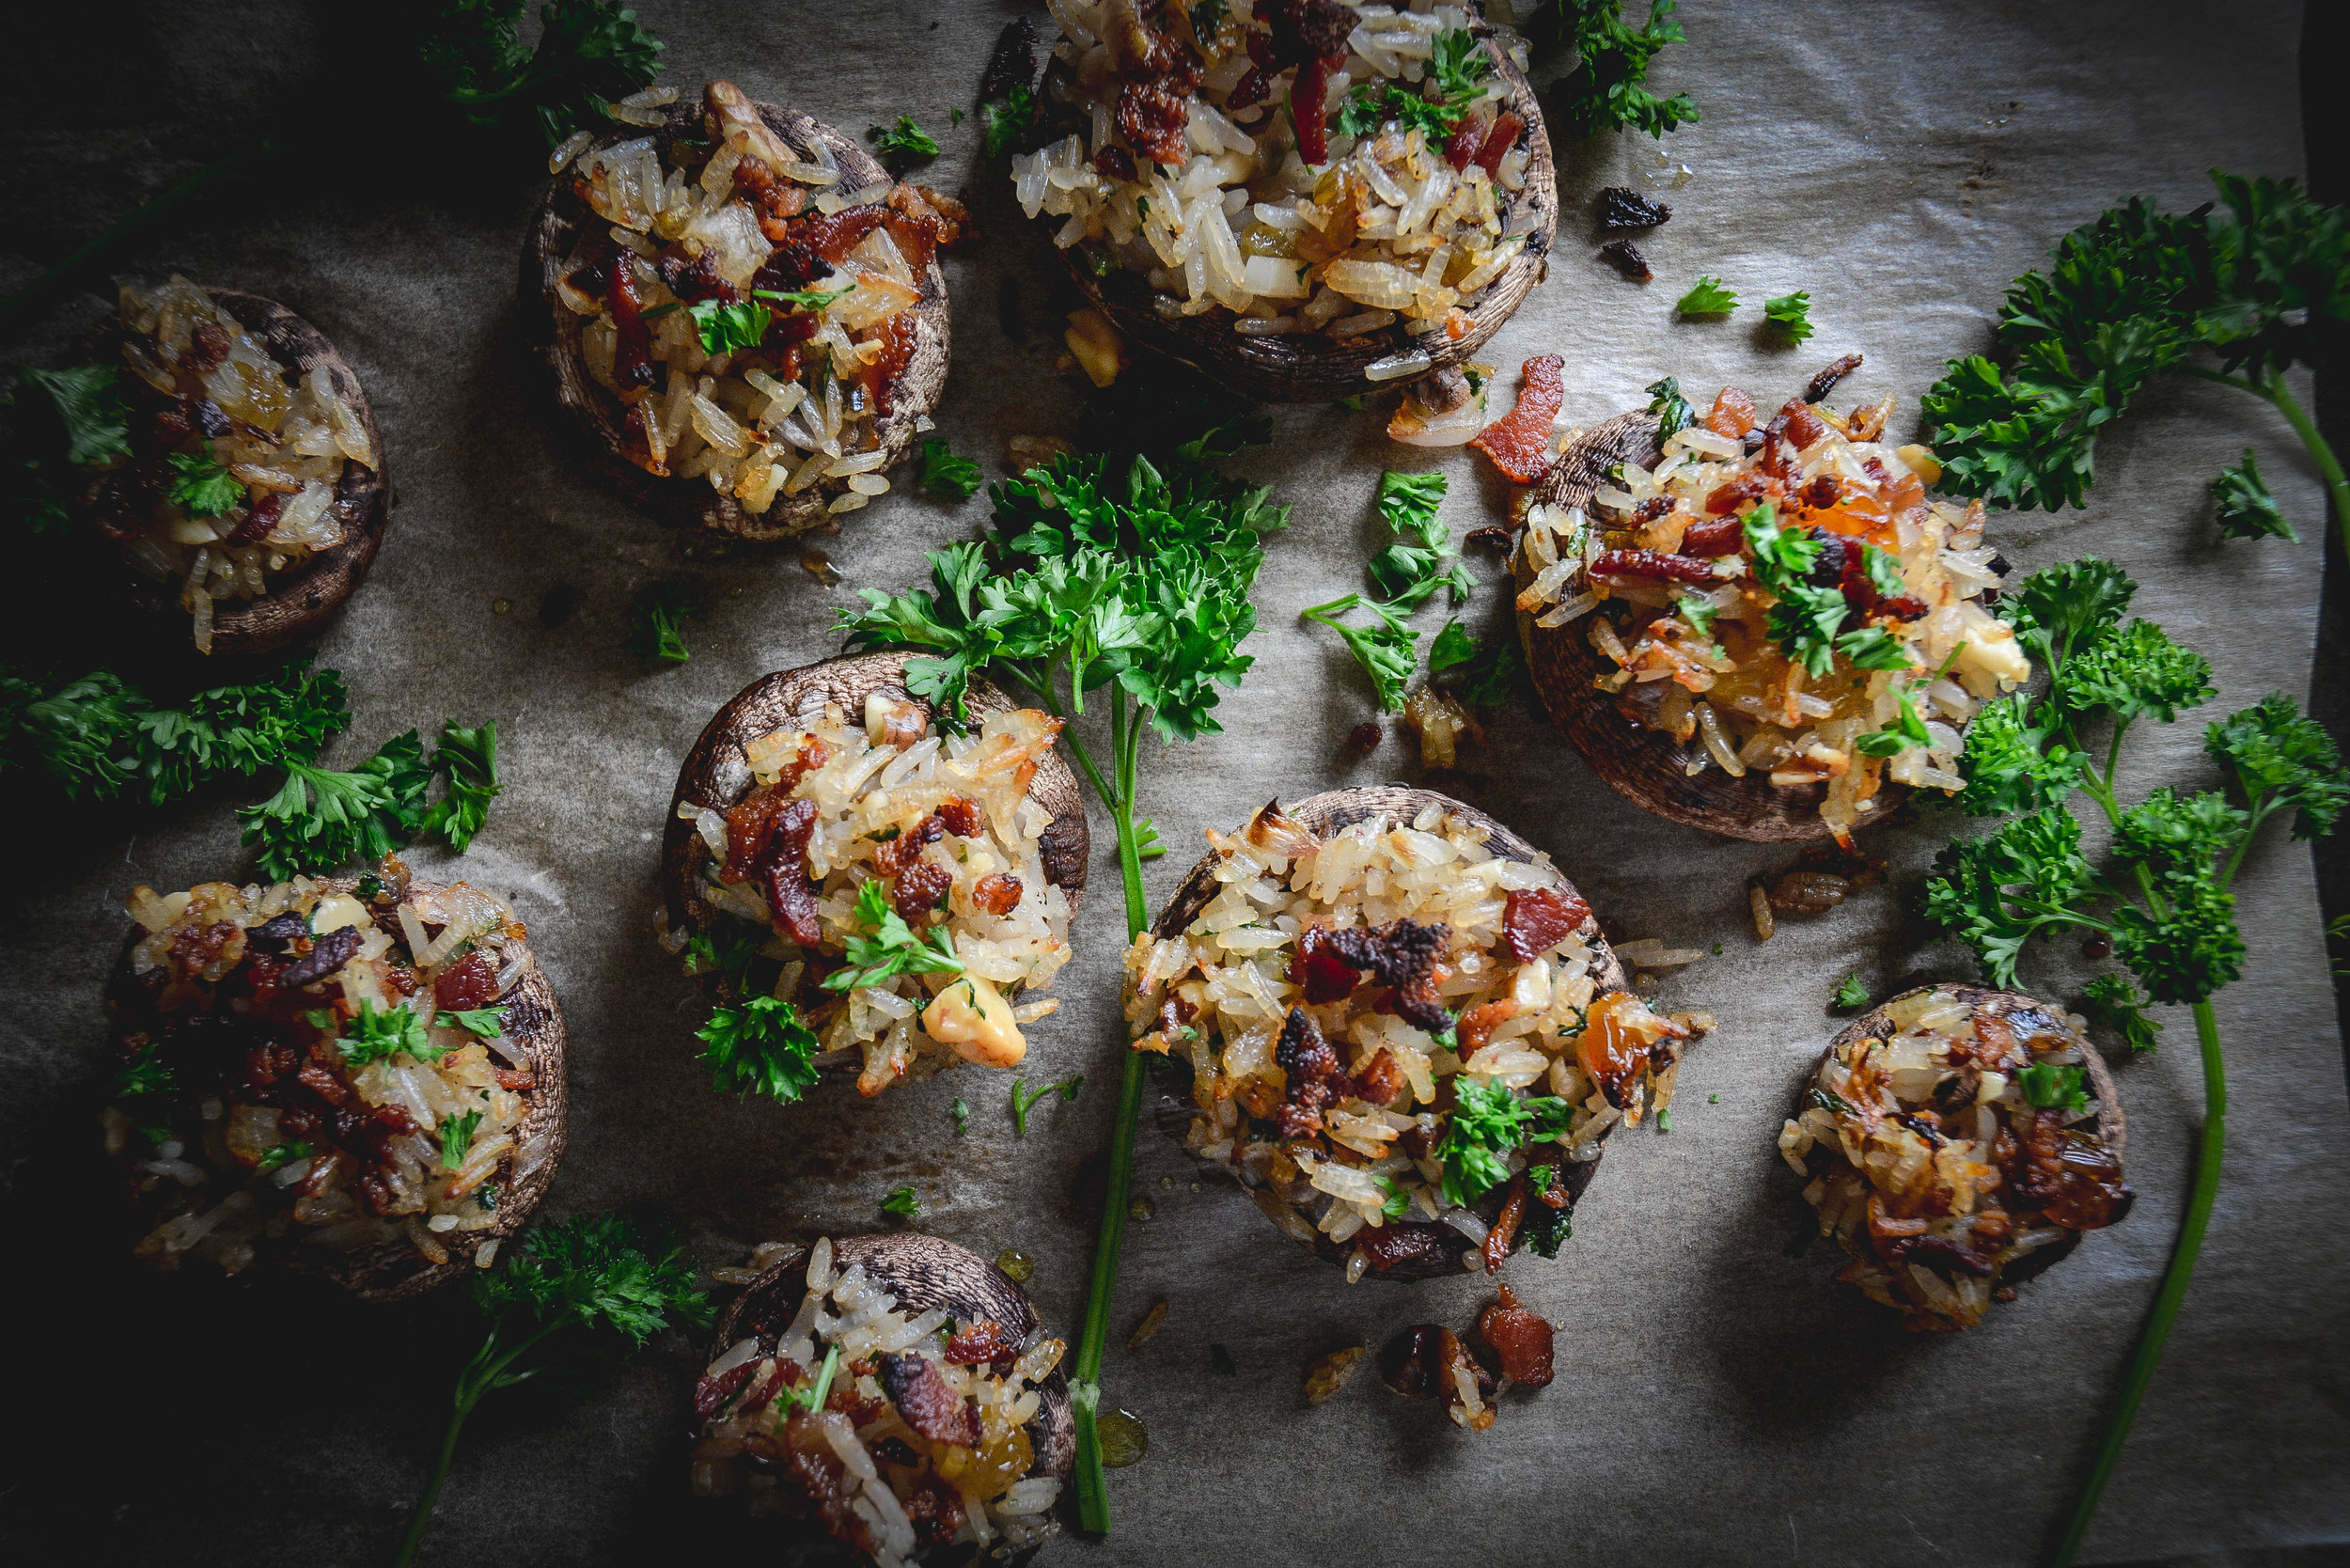 stuffed mushrooms with parsley, rice, bacon, walnuts and raisins